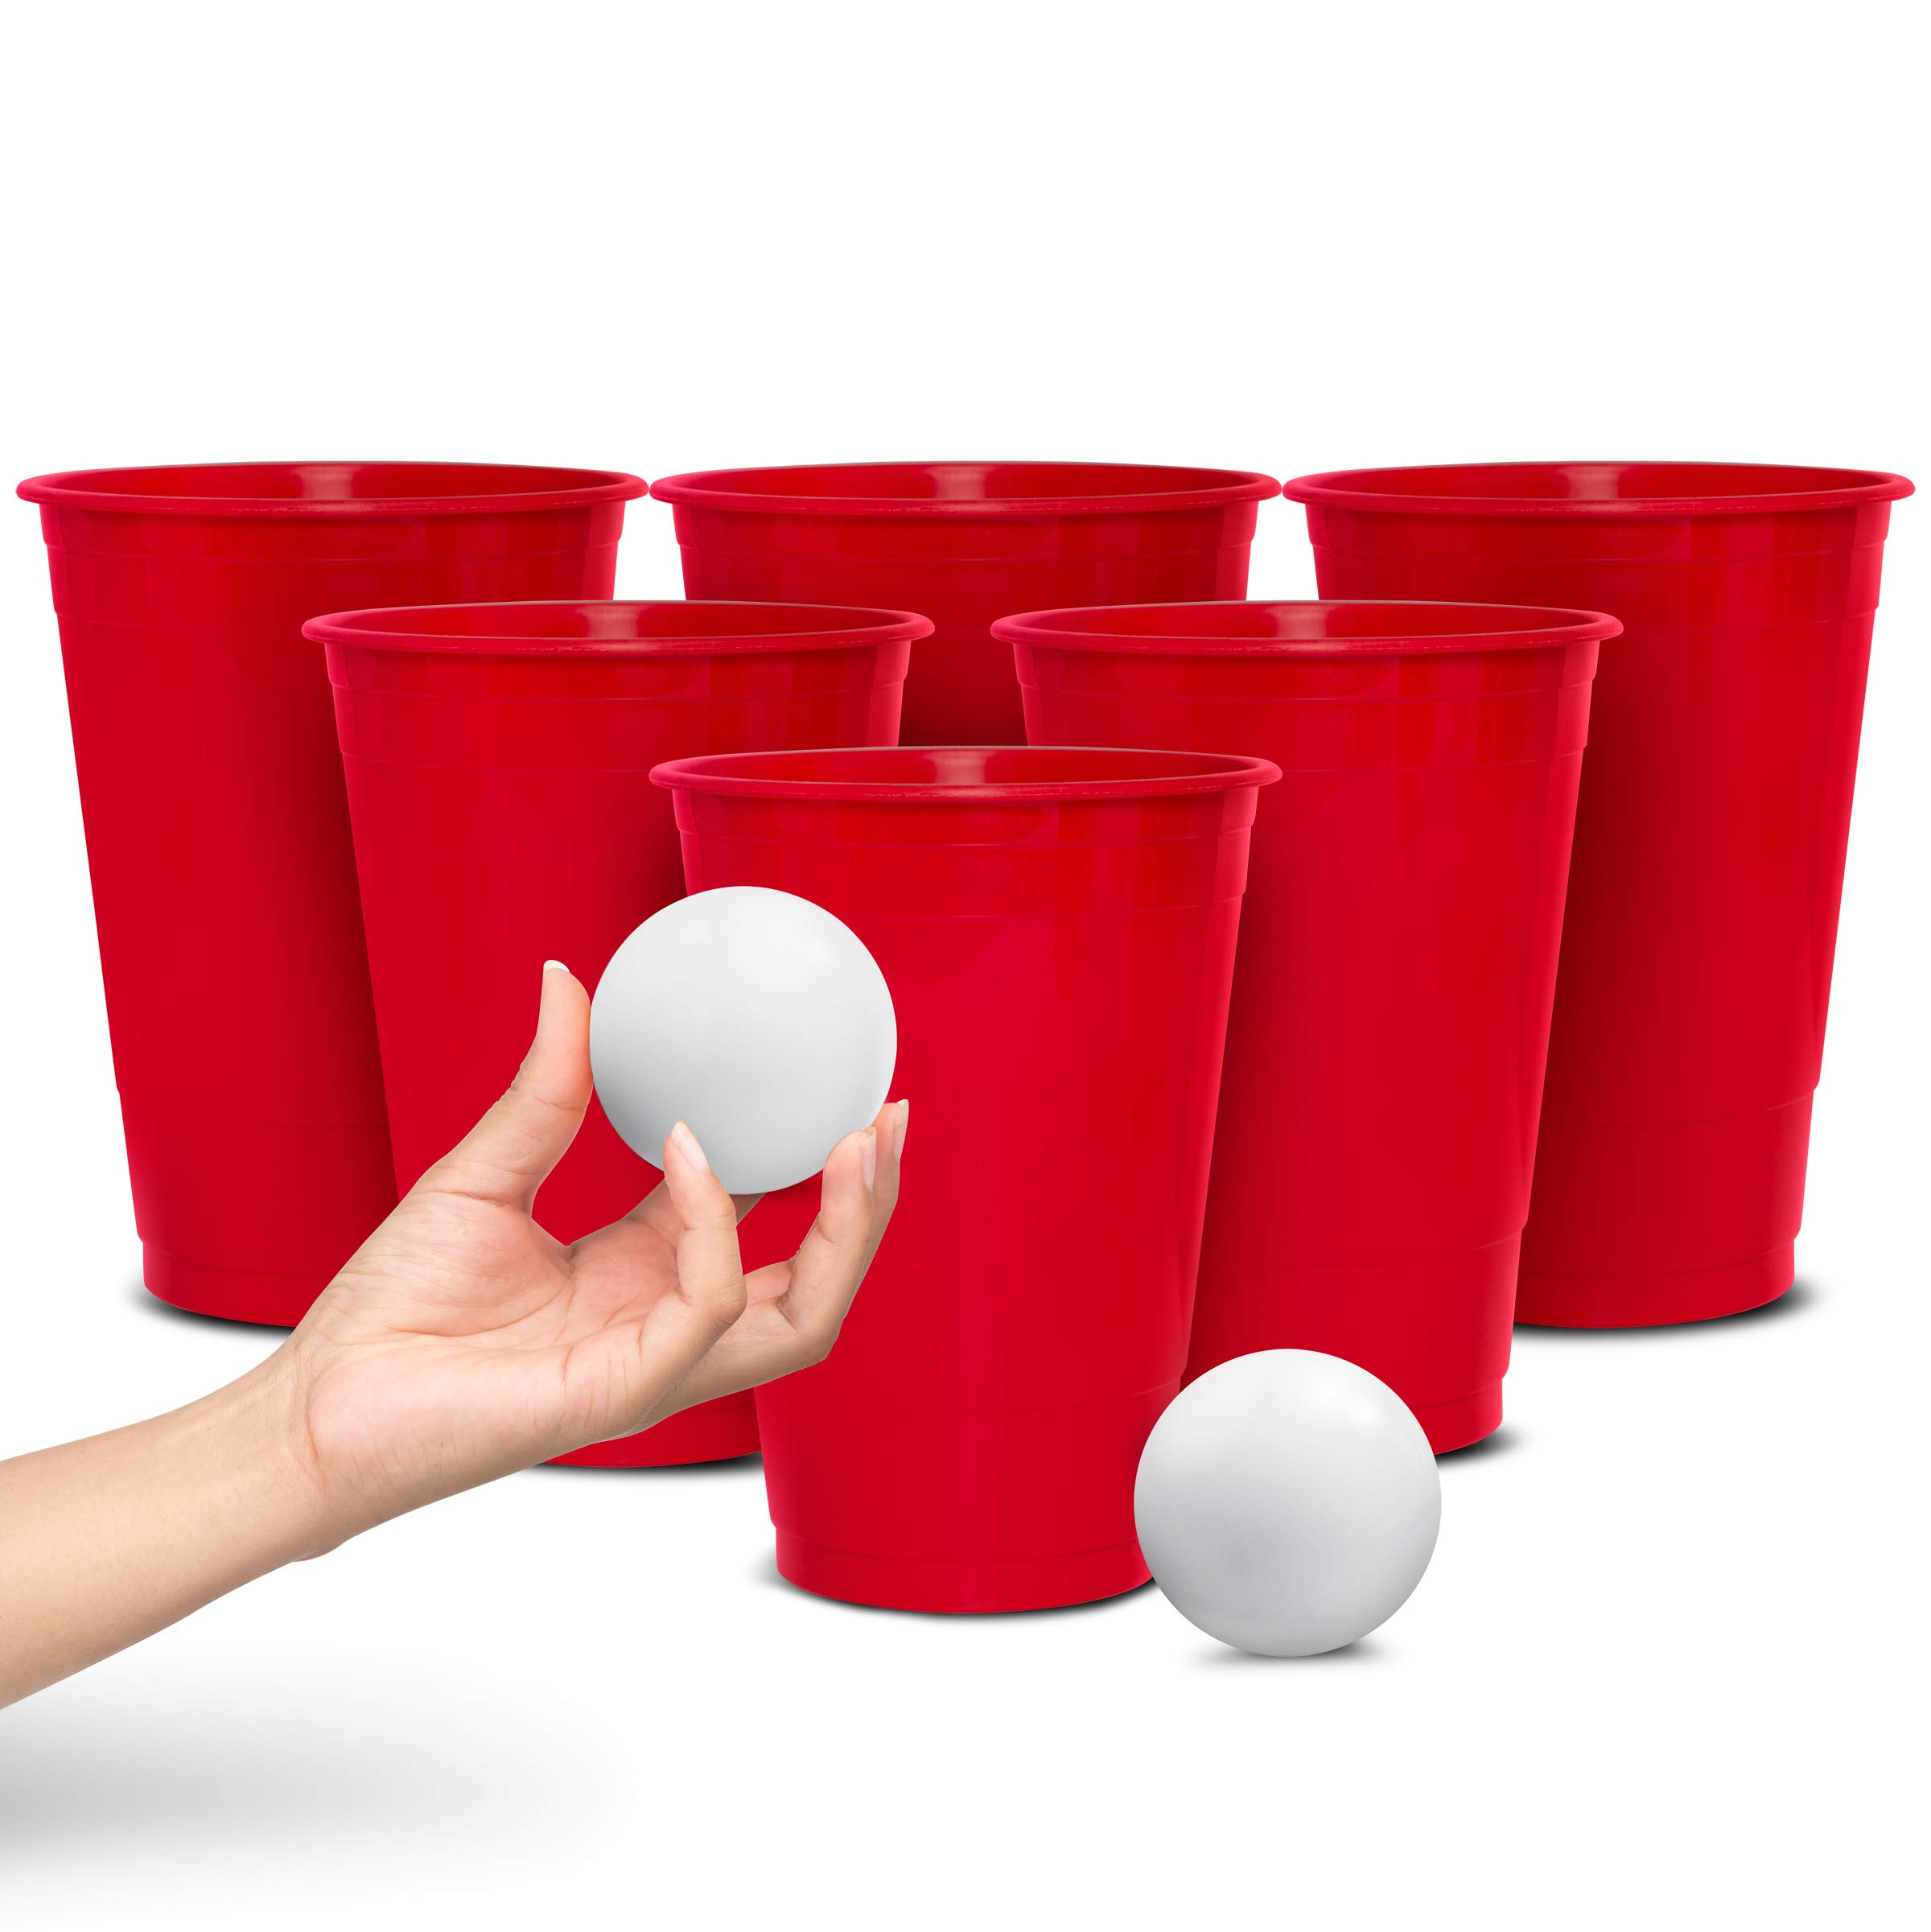 Wembley Oversized Beer Pong Party Drinking Game with 12 Big Cups, 2 Balls & Carrying Bag by Wembley